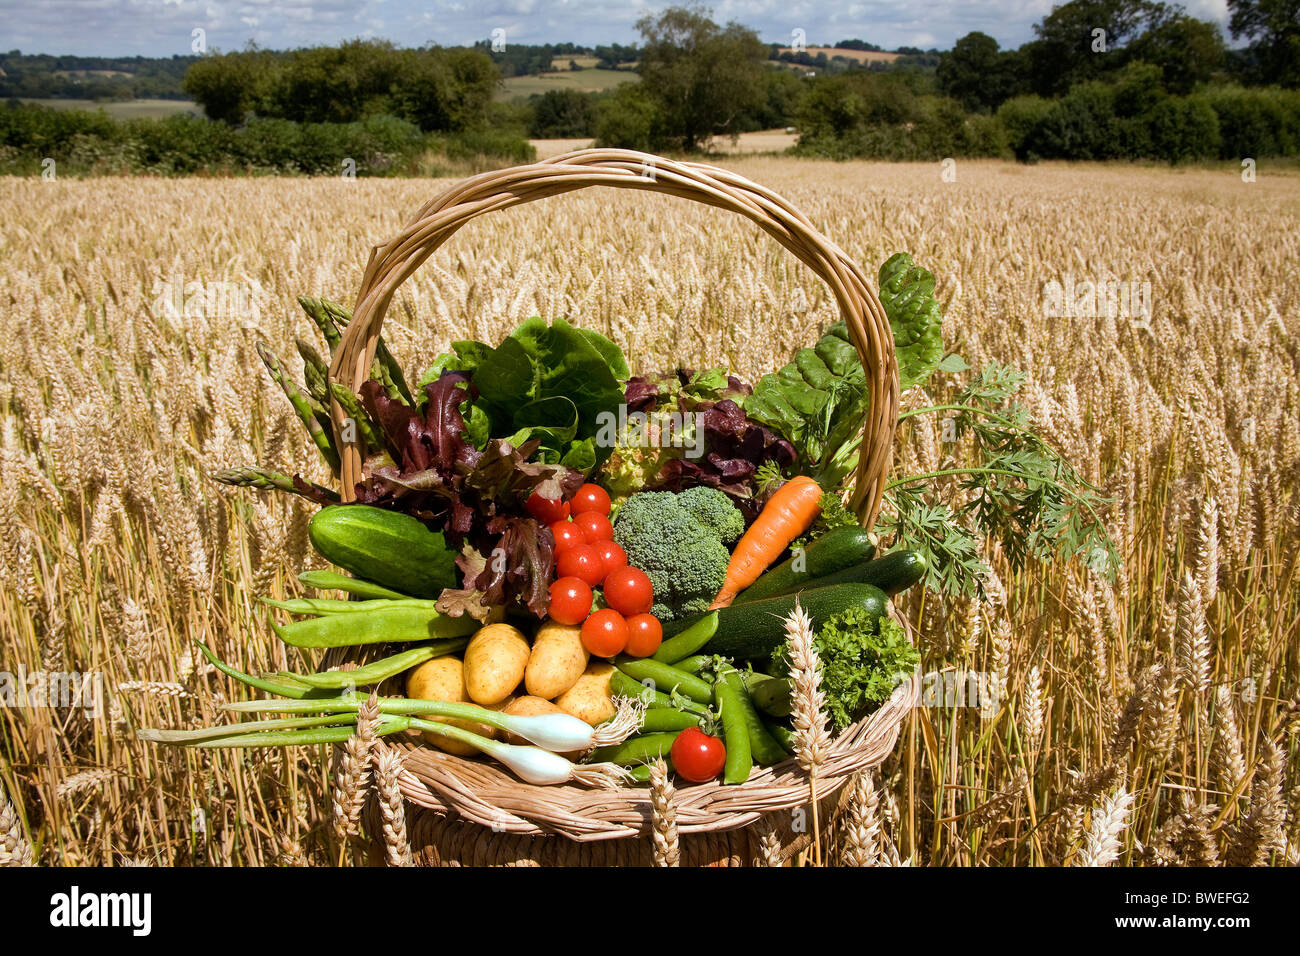 Locally grown variety of British summer vegetables in a basket in wheat field in countryside landscape the Weald - Stock Image